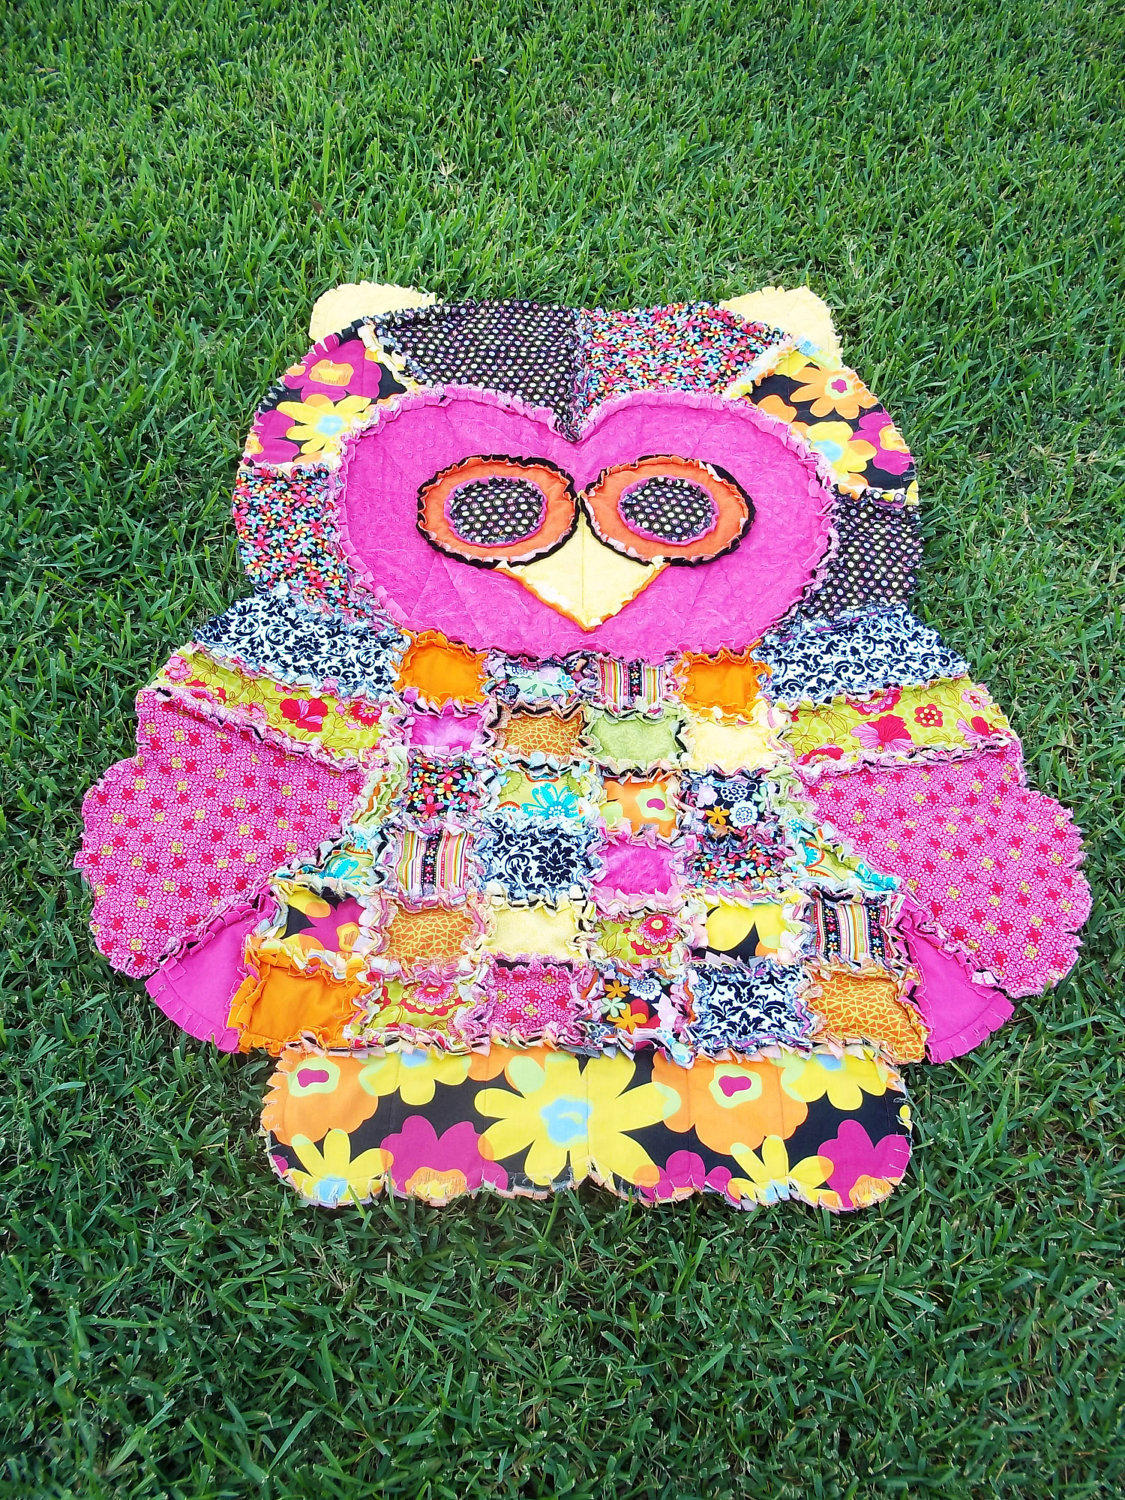 Living Room Designer App Groovy Hoot The Owl Rag Quilt By From Yourpicturefixer On Etsy